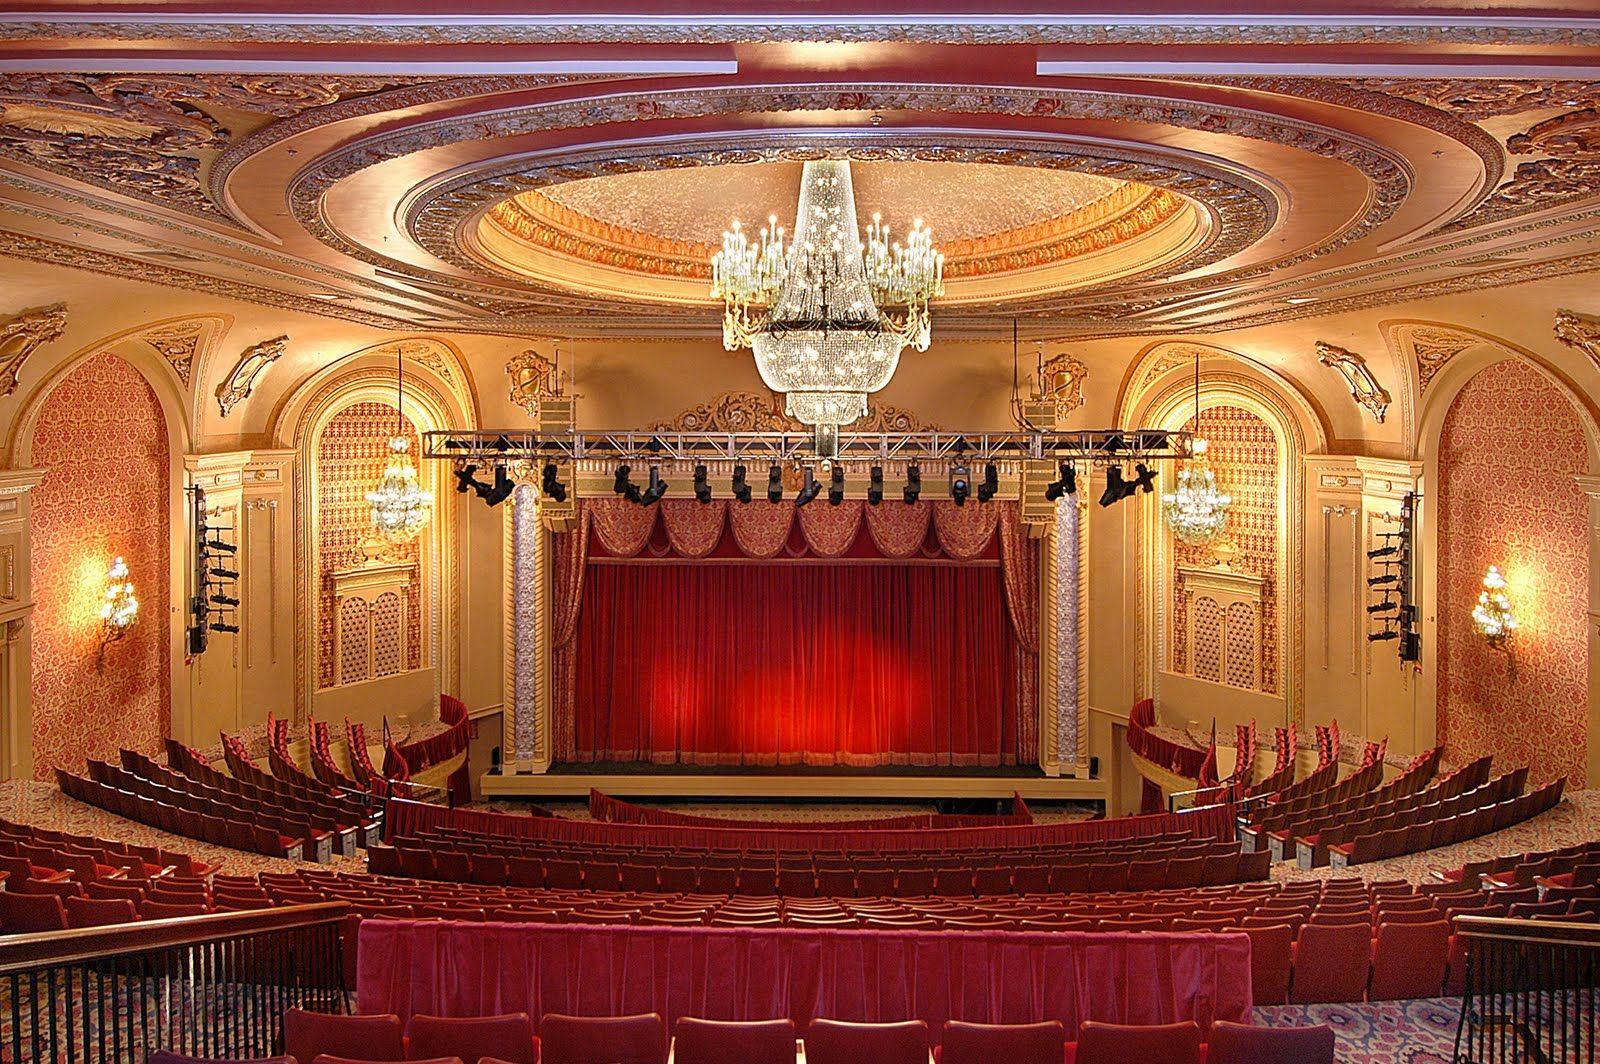 Genesee theatre waukegan il no place like home pinterest